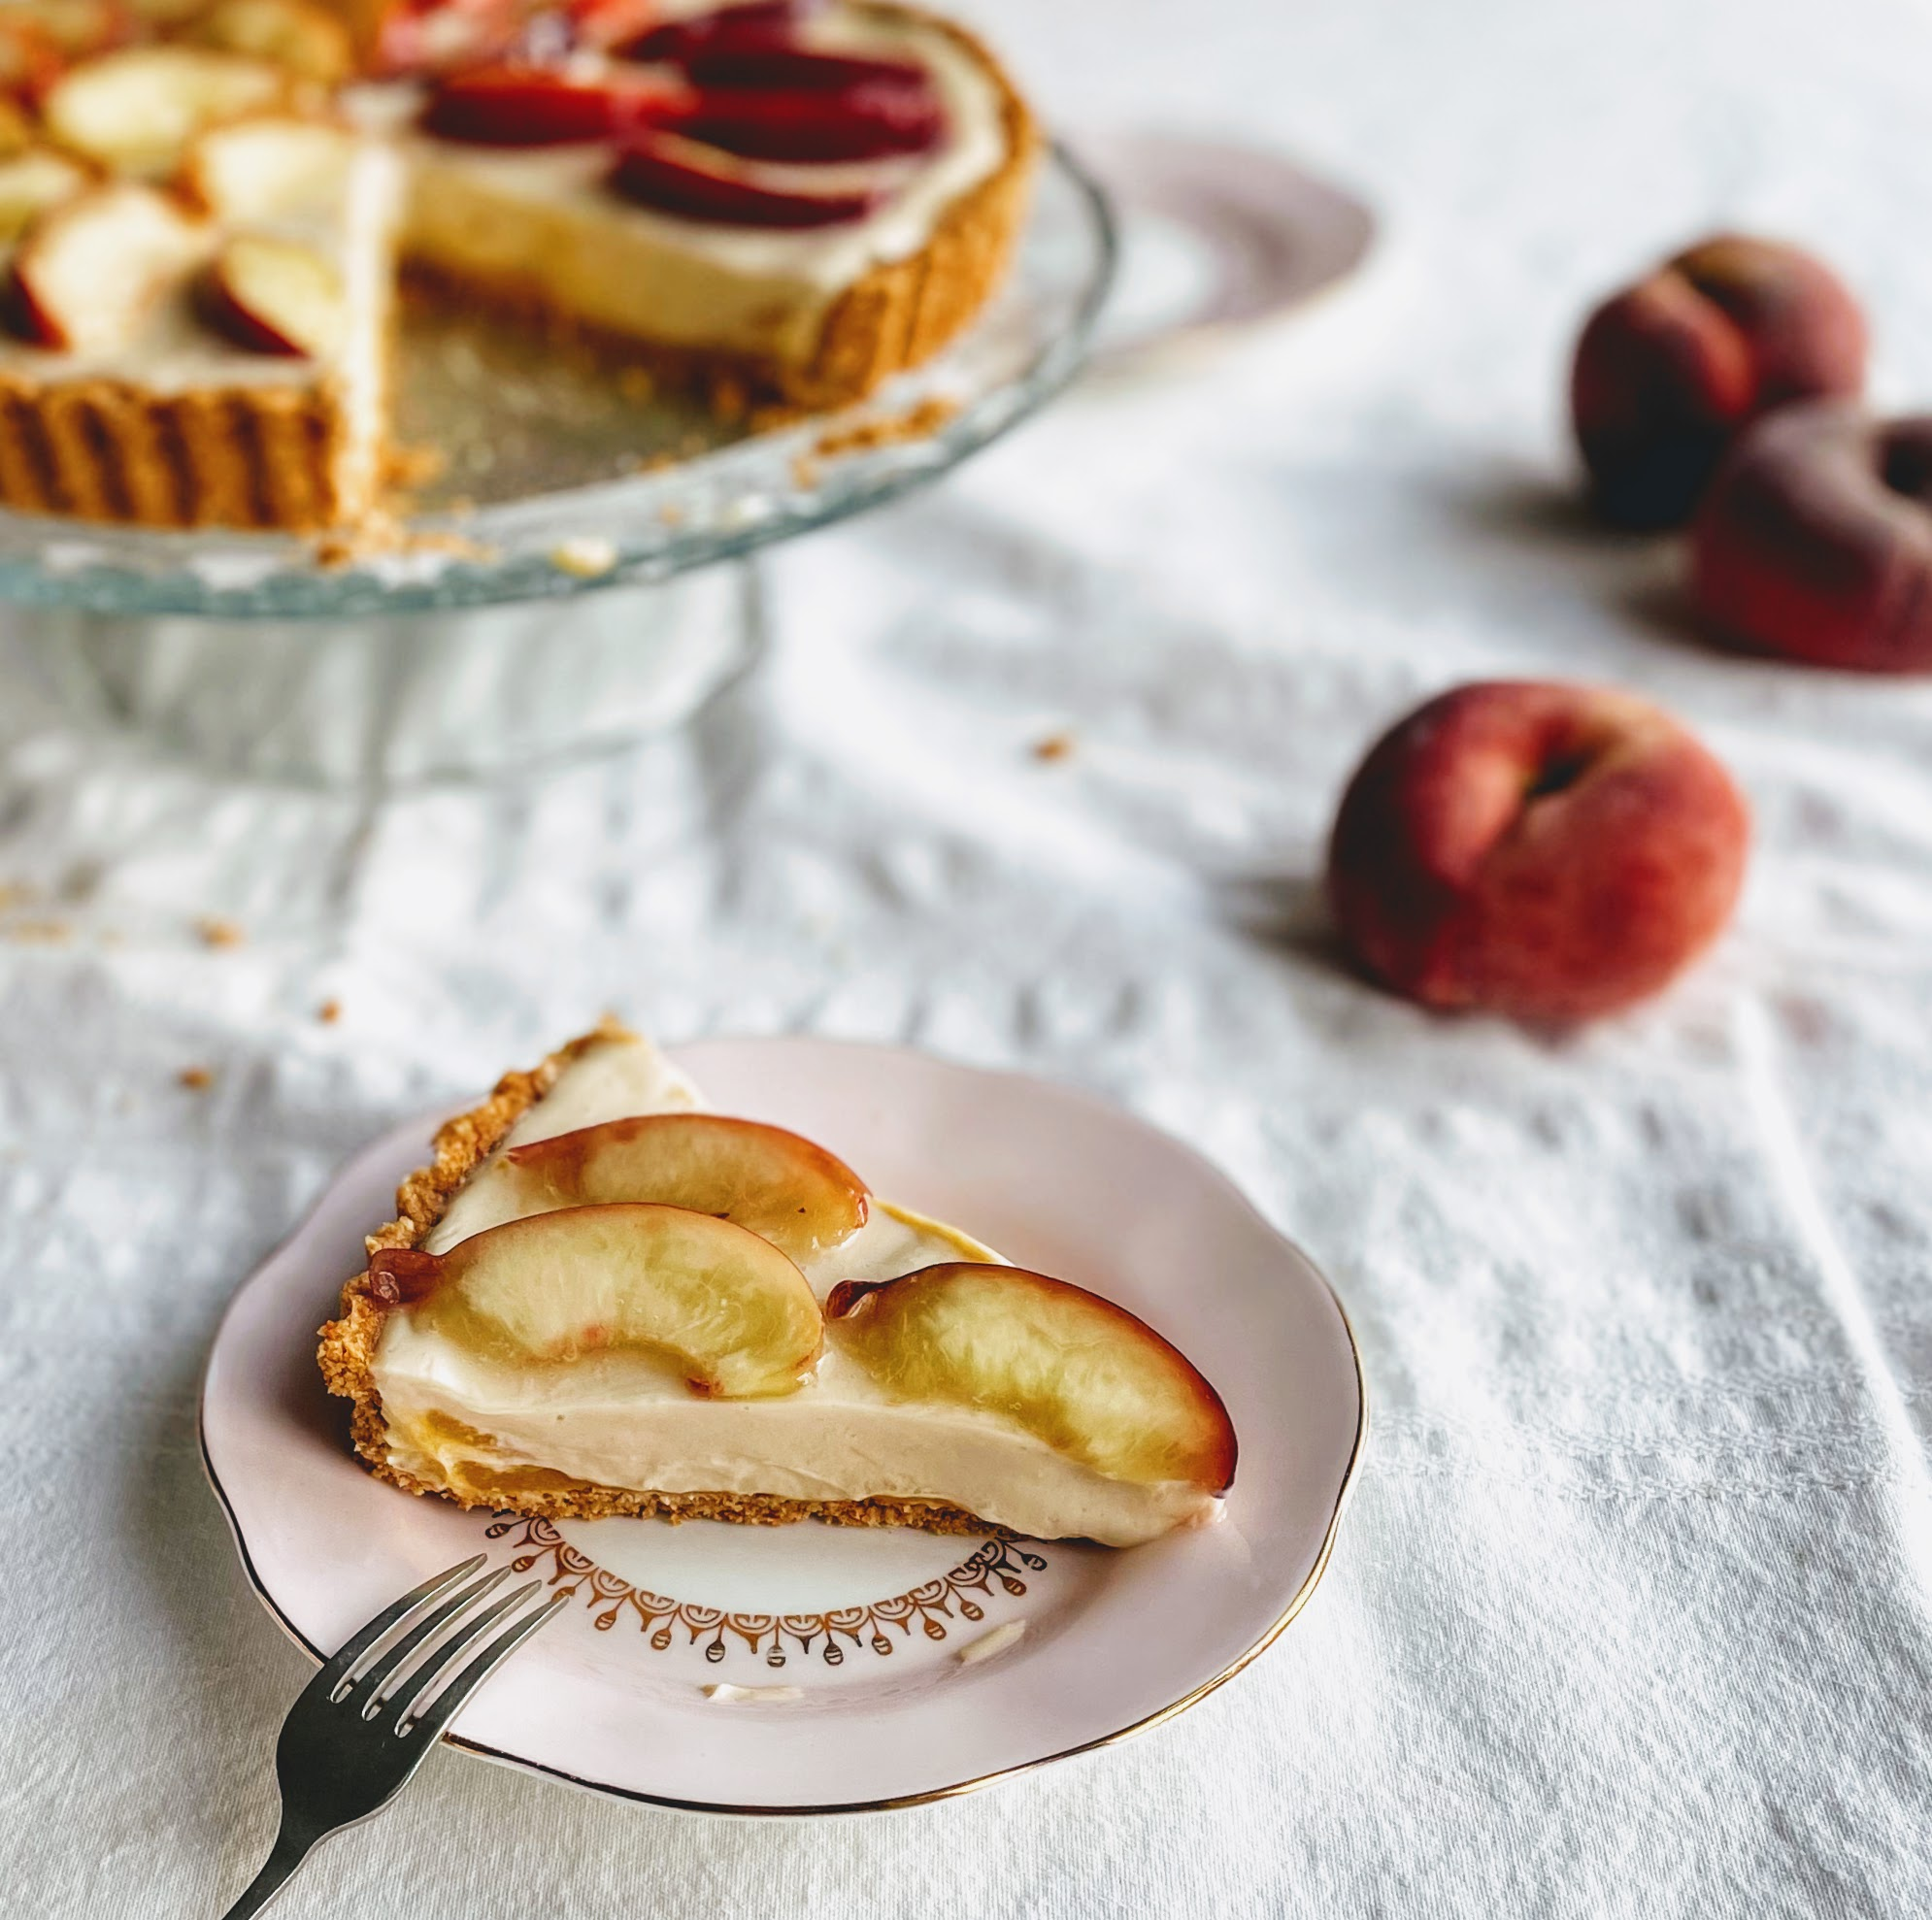 A slice of peach and white chocolate tart. The base is thin and crisp and you can see a bright flash of peach puree underneath the silky smooth white chocolate filling. There are three juicy slices of fresh peach on top, and three velvety peaches in the background, along with the rest of the tart on a glass cake stand.